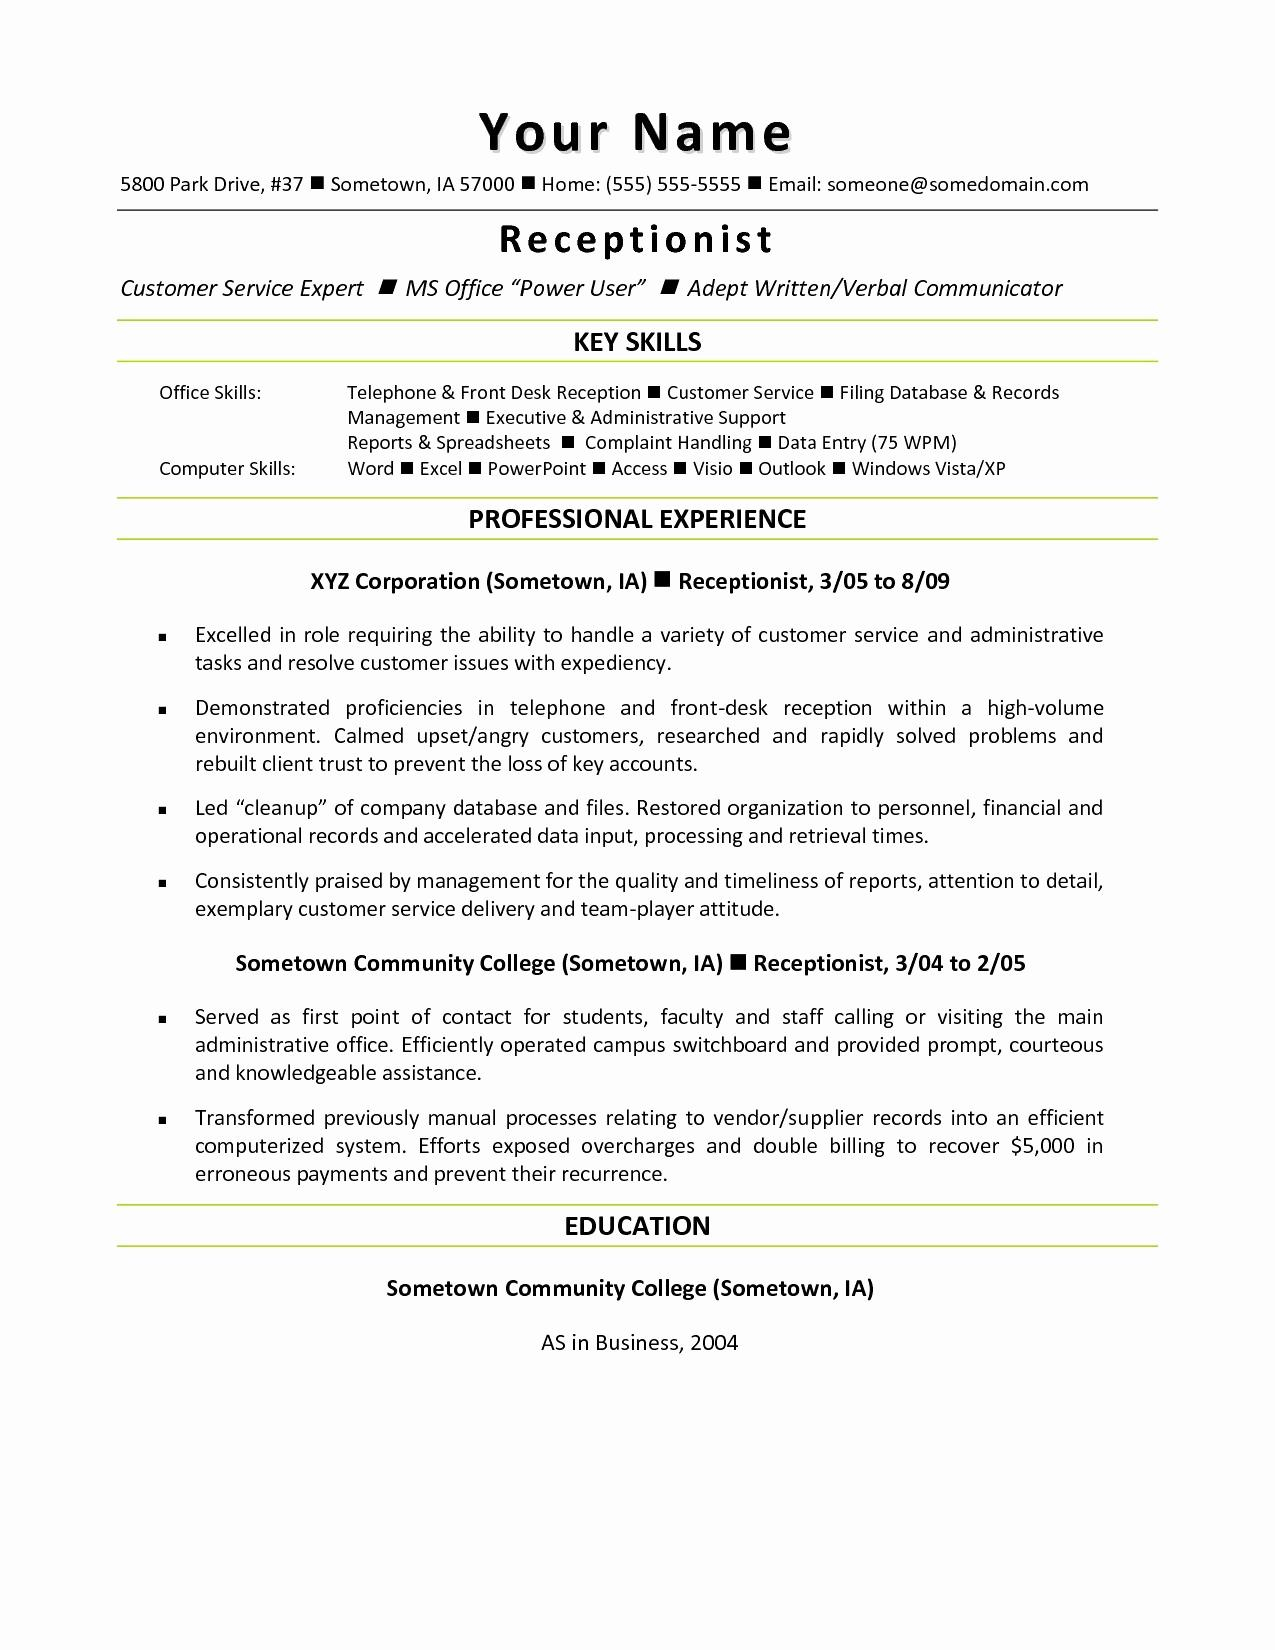 Resume Cover Letter Template Word Free - 38 Best Cover Letter and Resume format Resume Templates Ideas